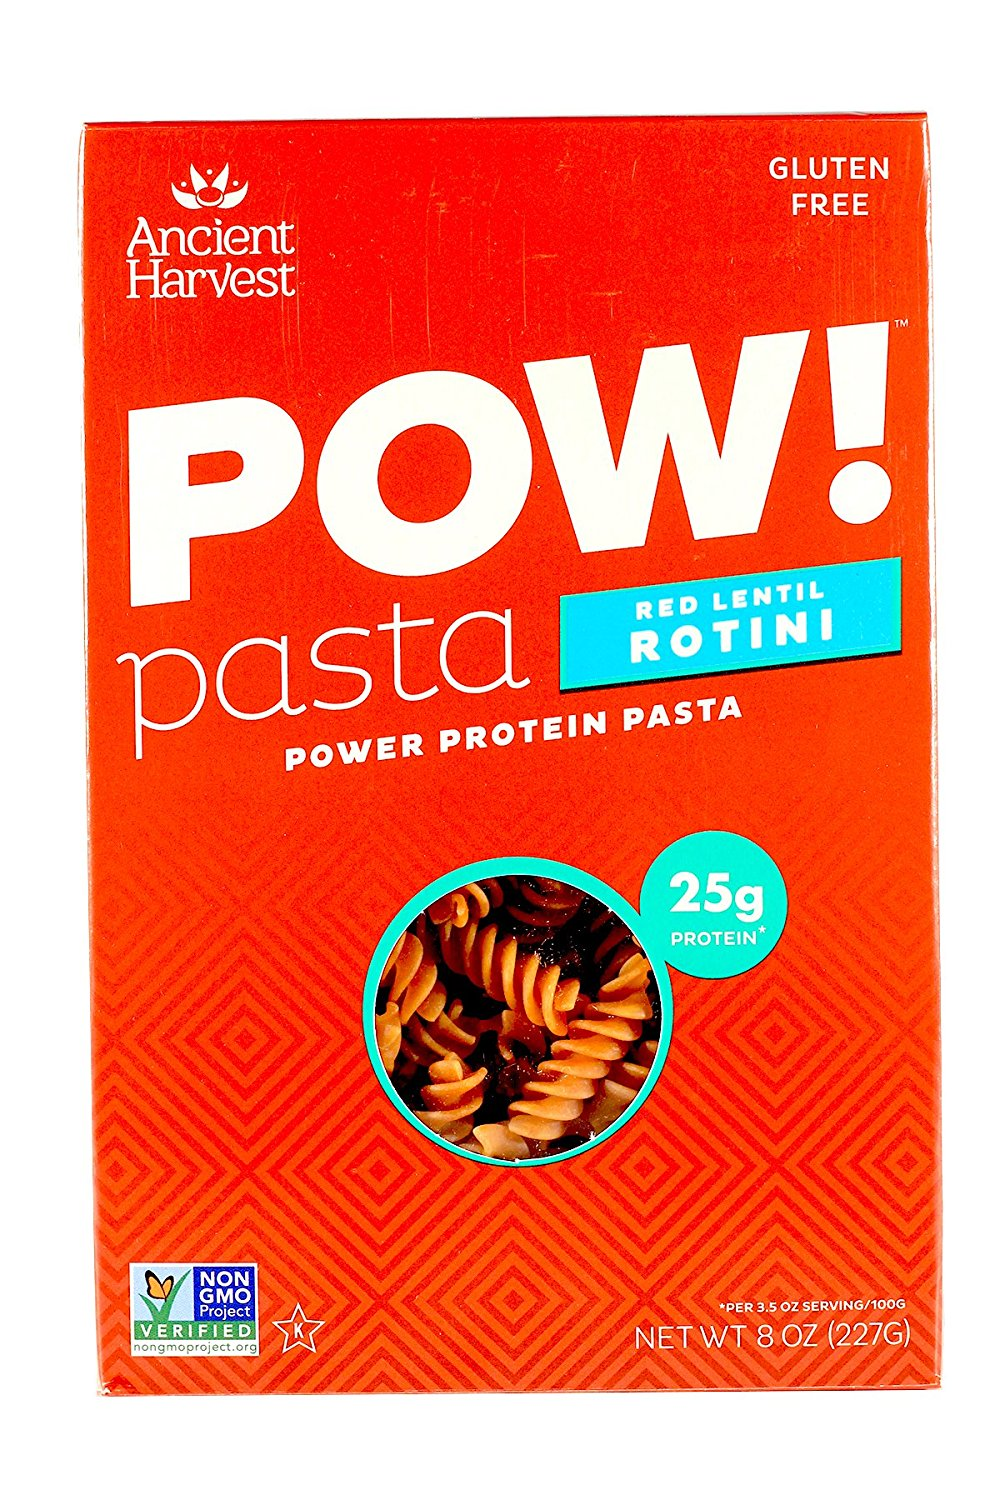 Ancient Harvest POW Pasta Red Lentil Rotini -- 8 oz - 2 pc - Buy Fast delivery